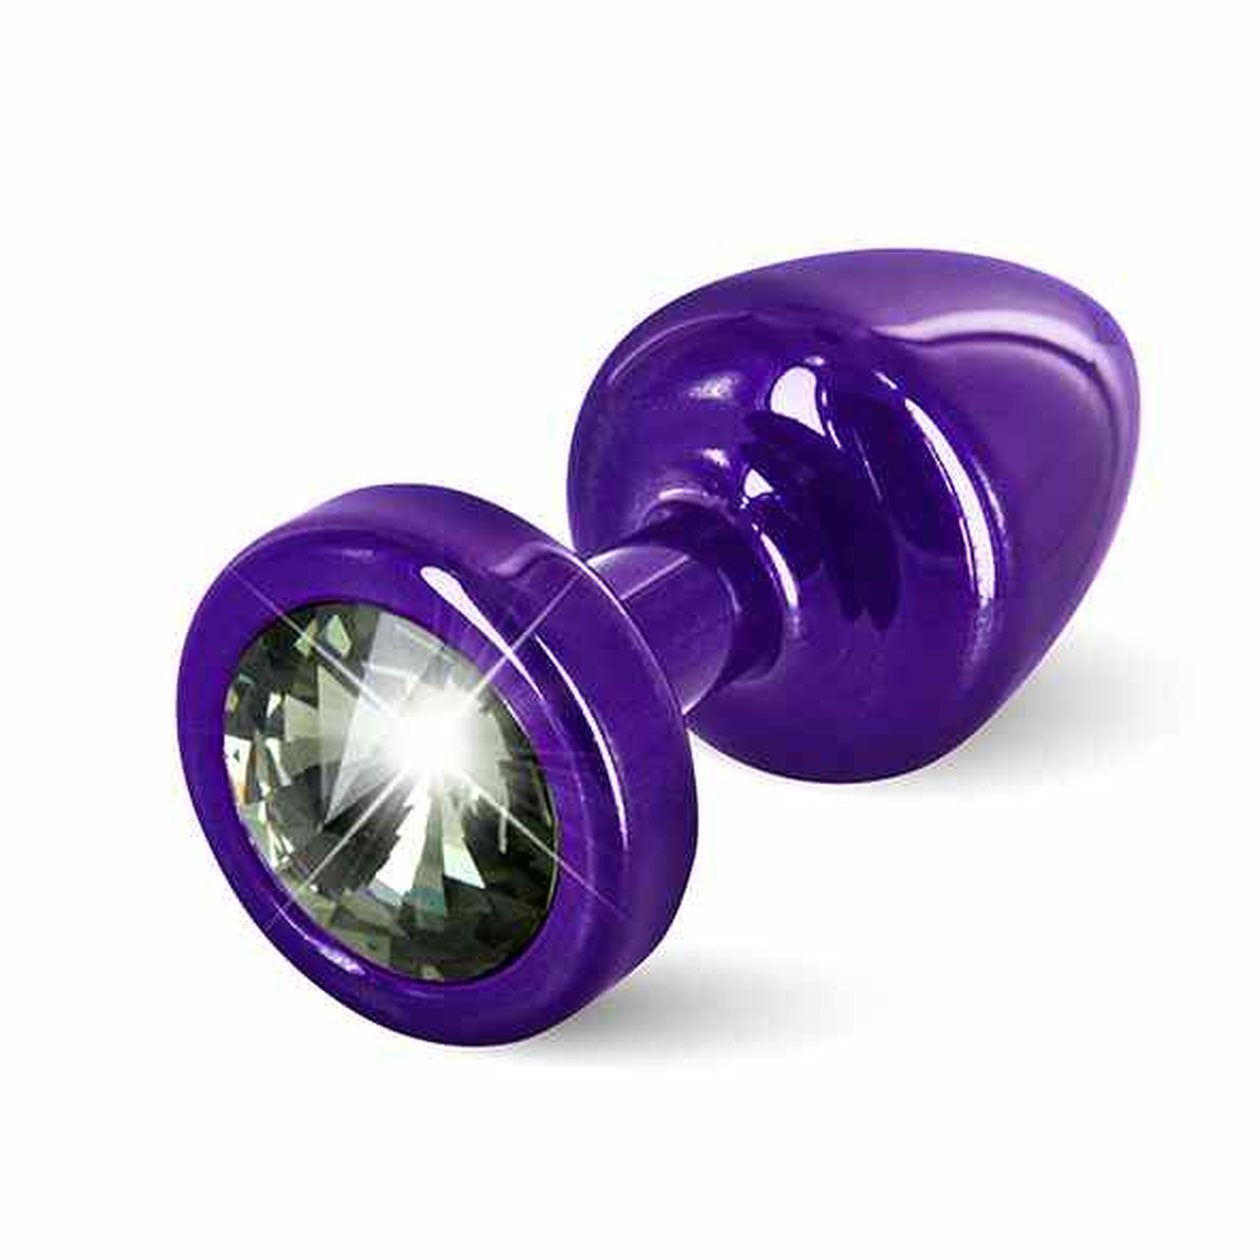 Diogol - Anni Butt Plug Round 25 mm Purple & Black